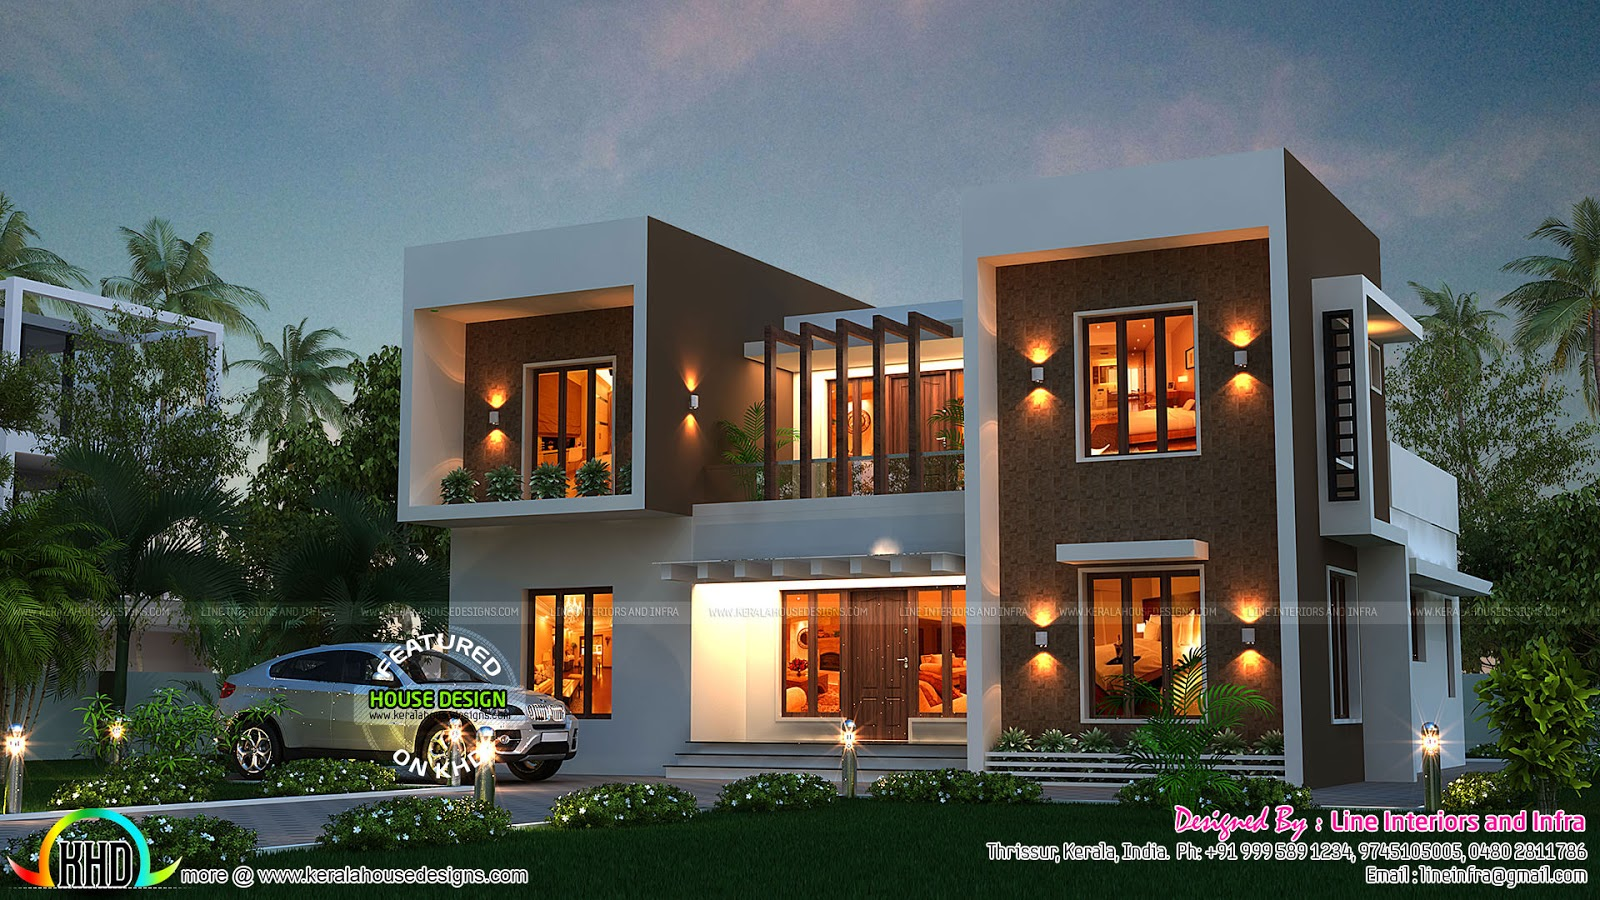 Stunning box type home - Kerala home design and floor plans